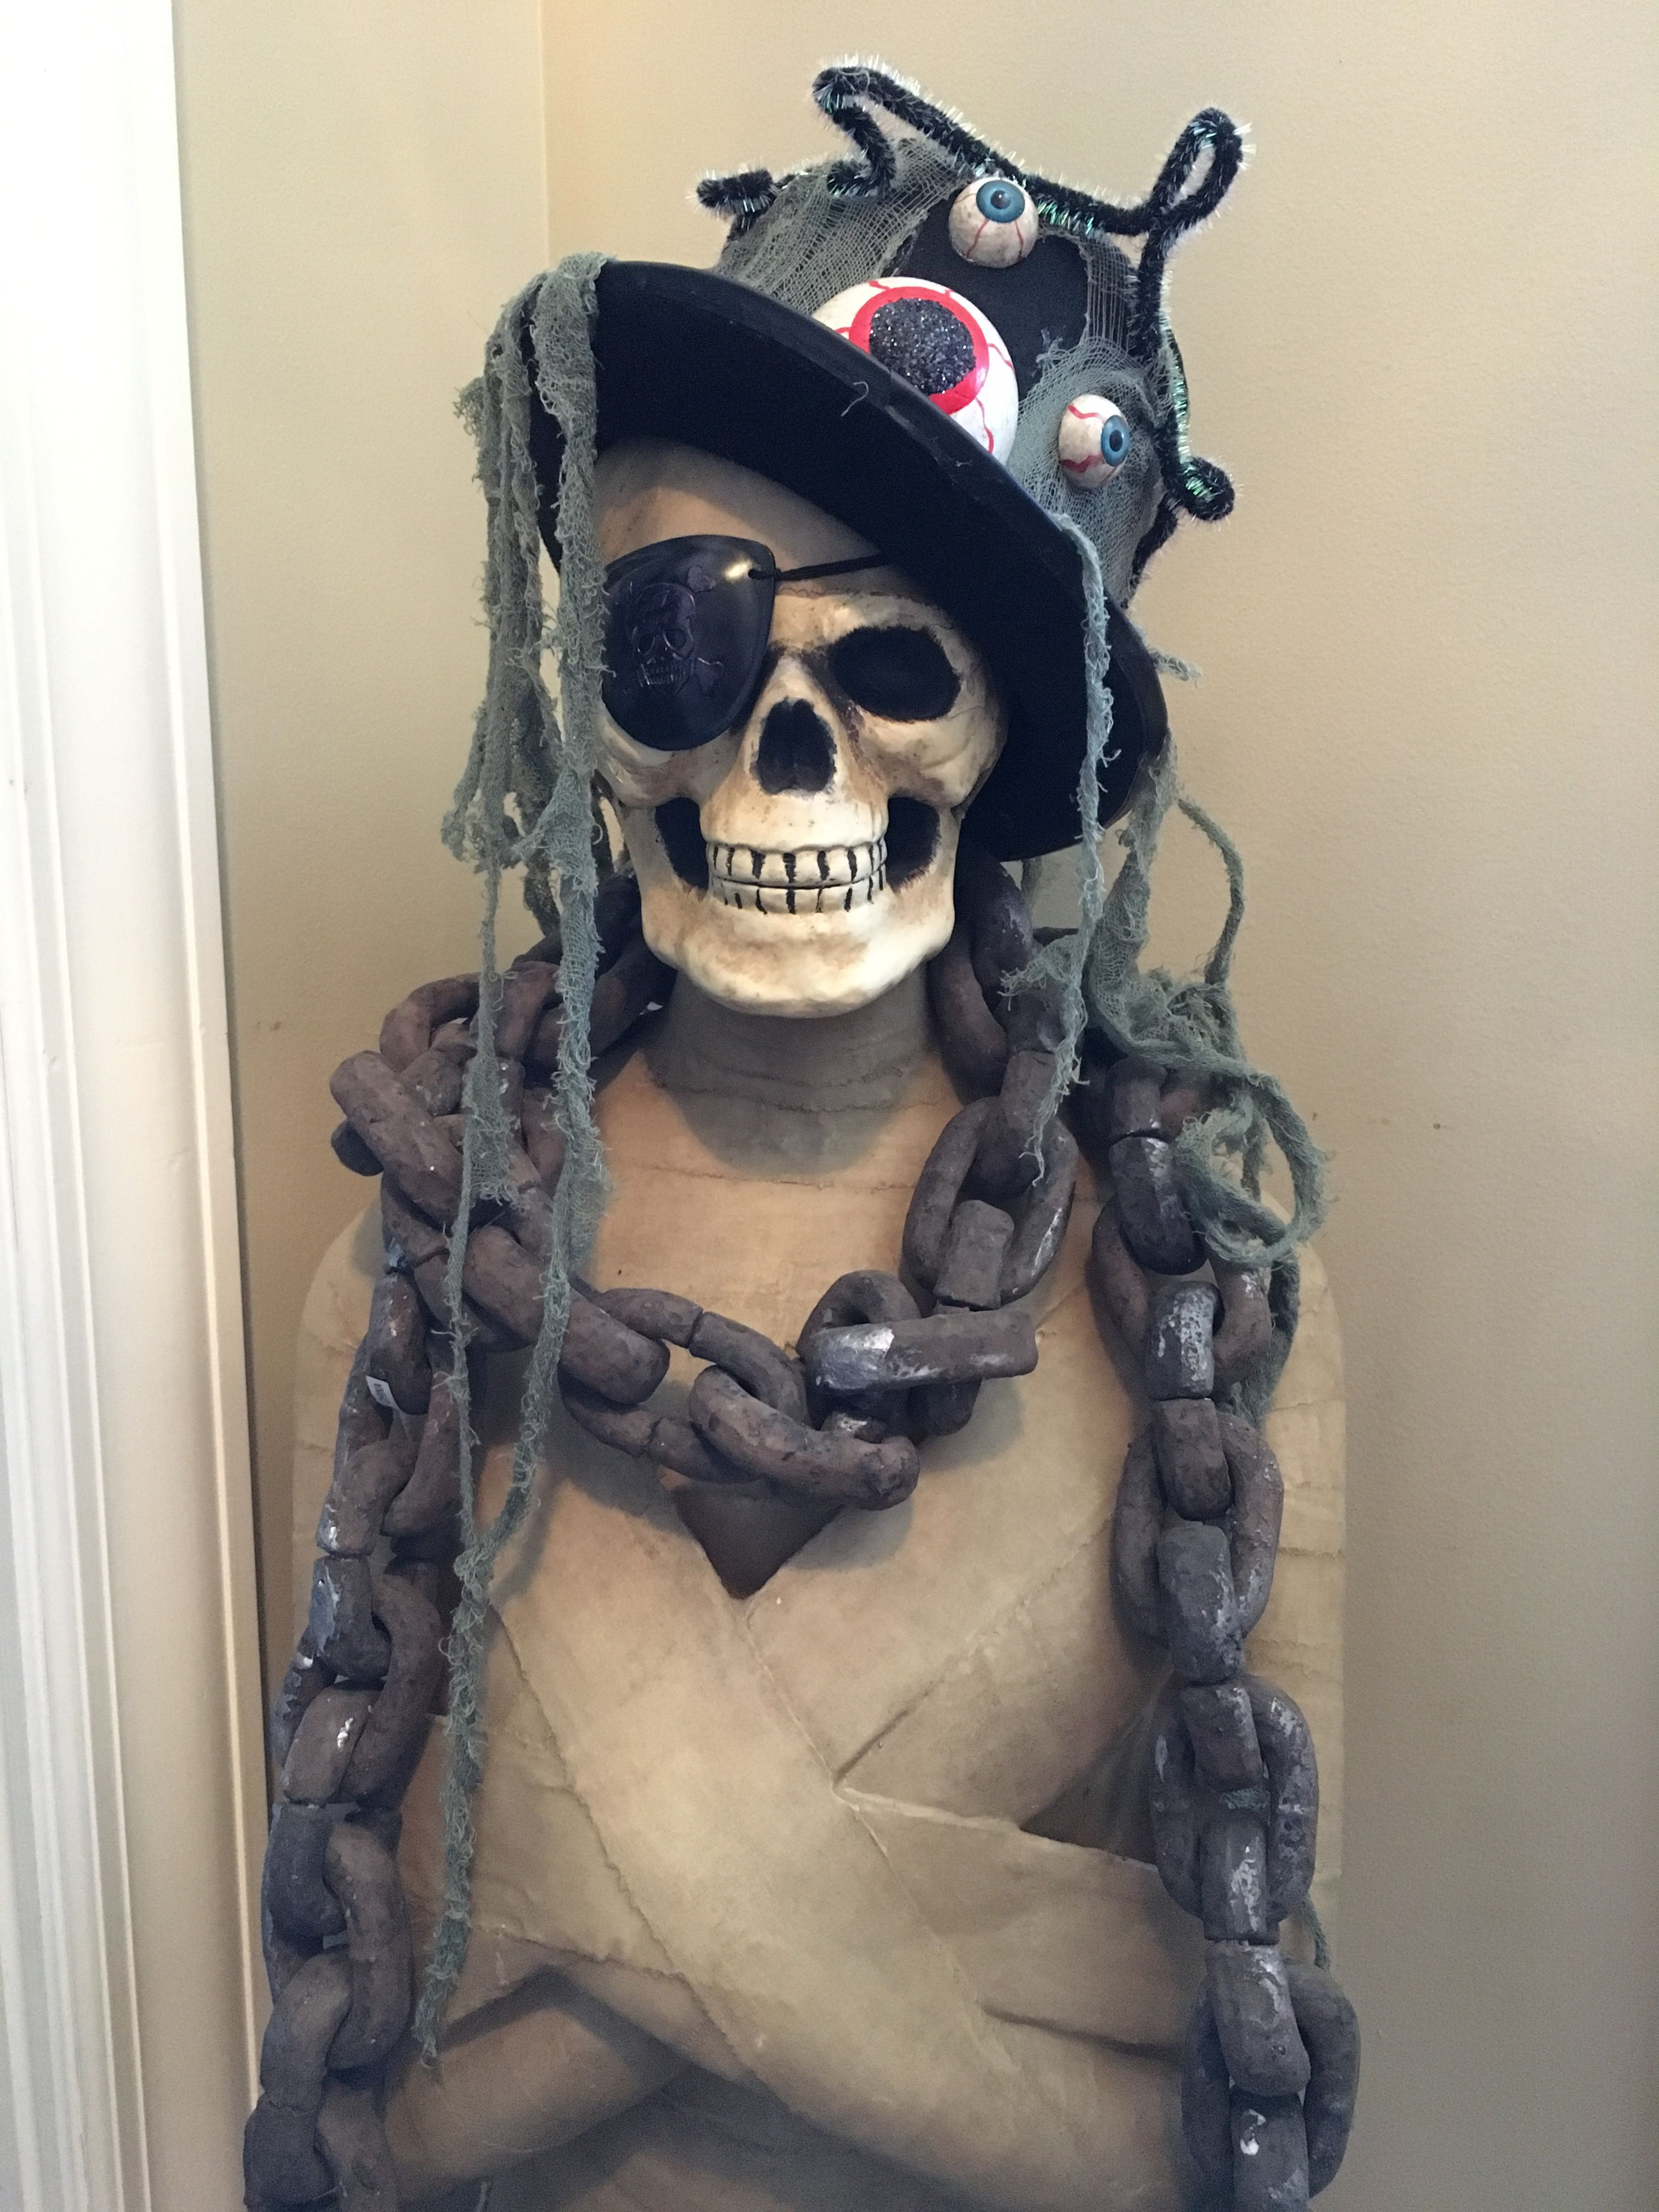 I dressed up my mummy with a nice hat, eye patch and some chains.